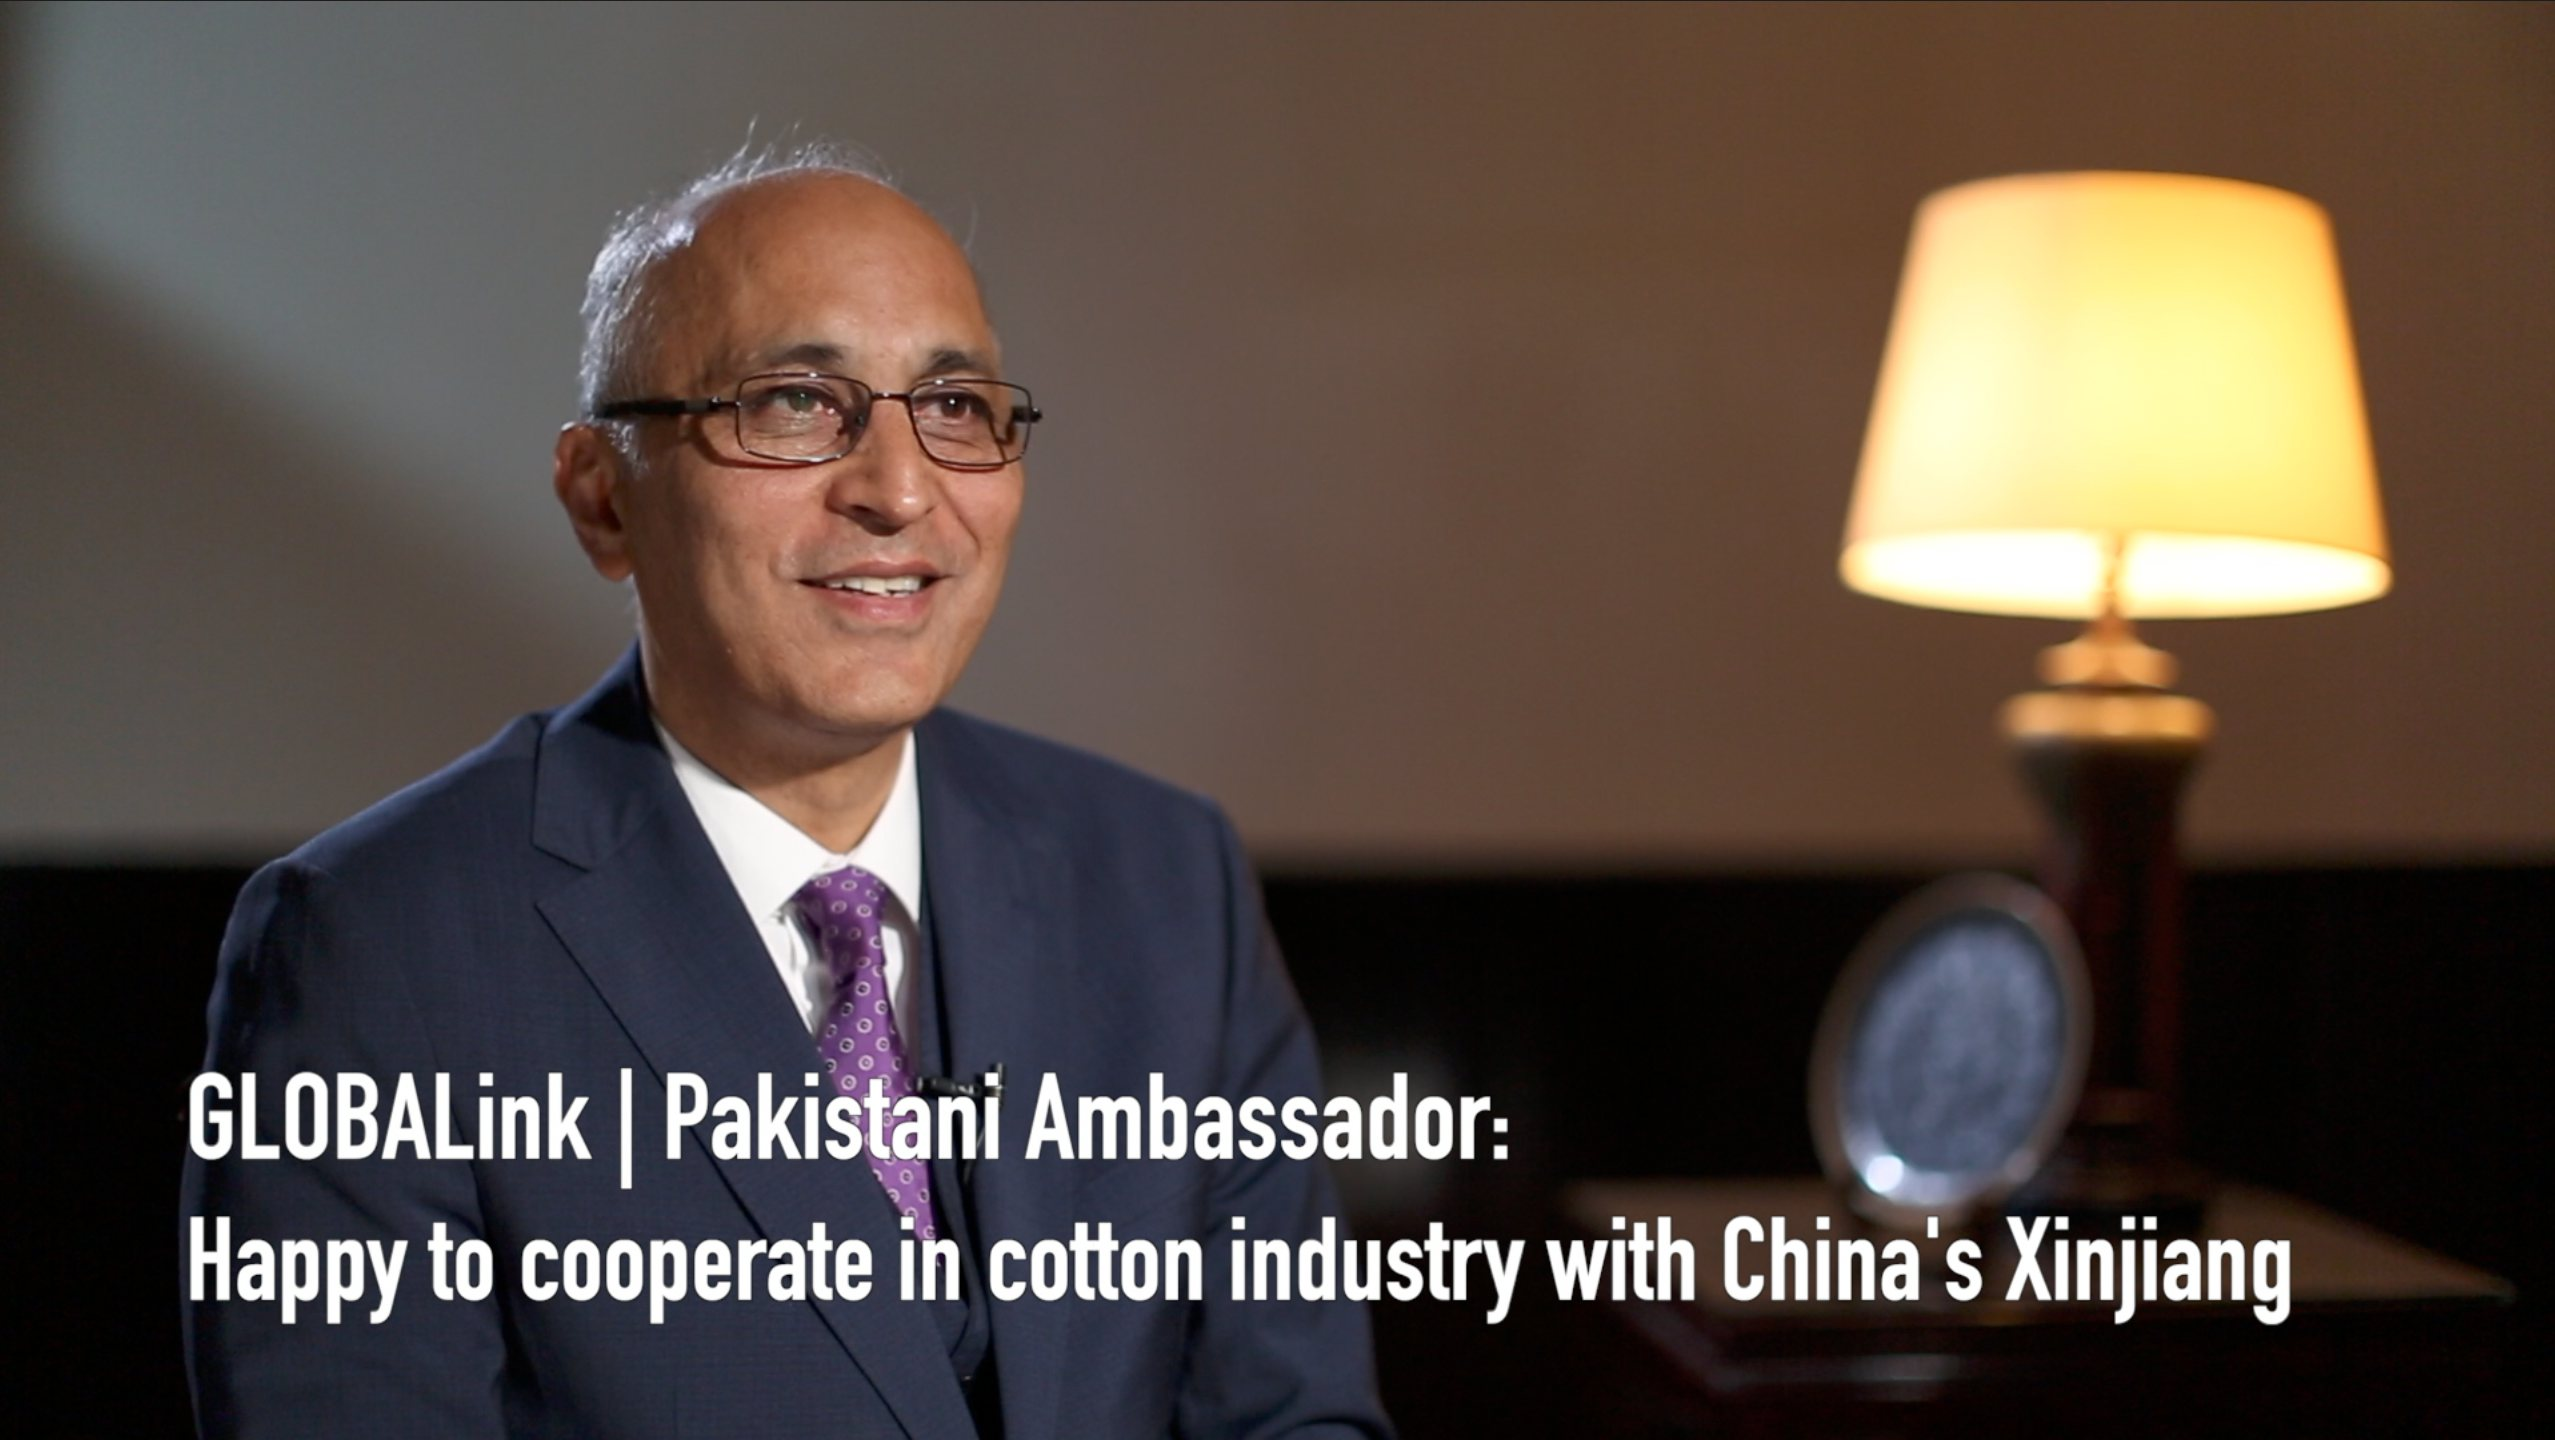 GLOBALink | Pakistani Ambassador: Happy to cooperate in cotton industry with China's Xinjiang